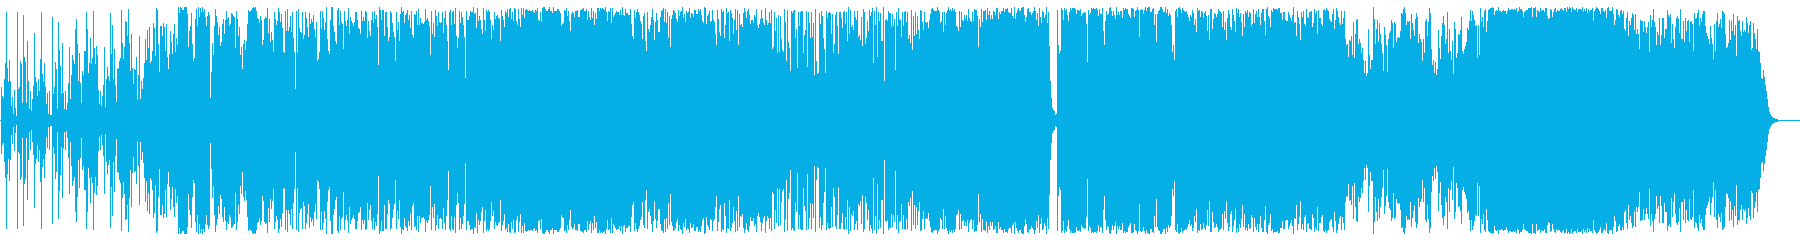 Jazz funk sound of a violin's reproduced waveform